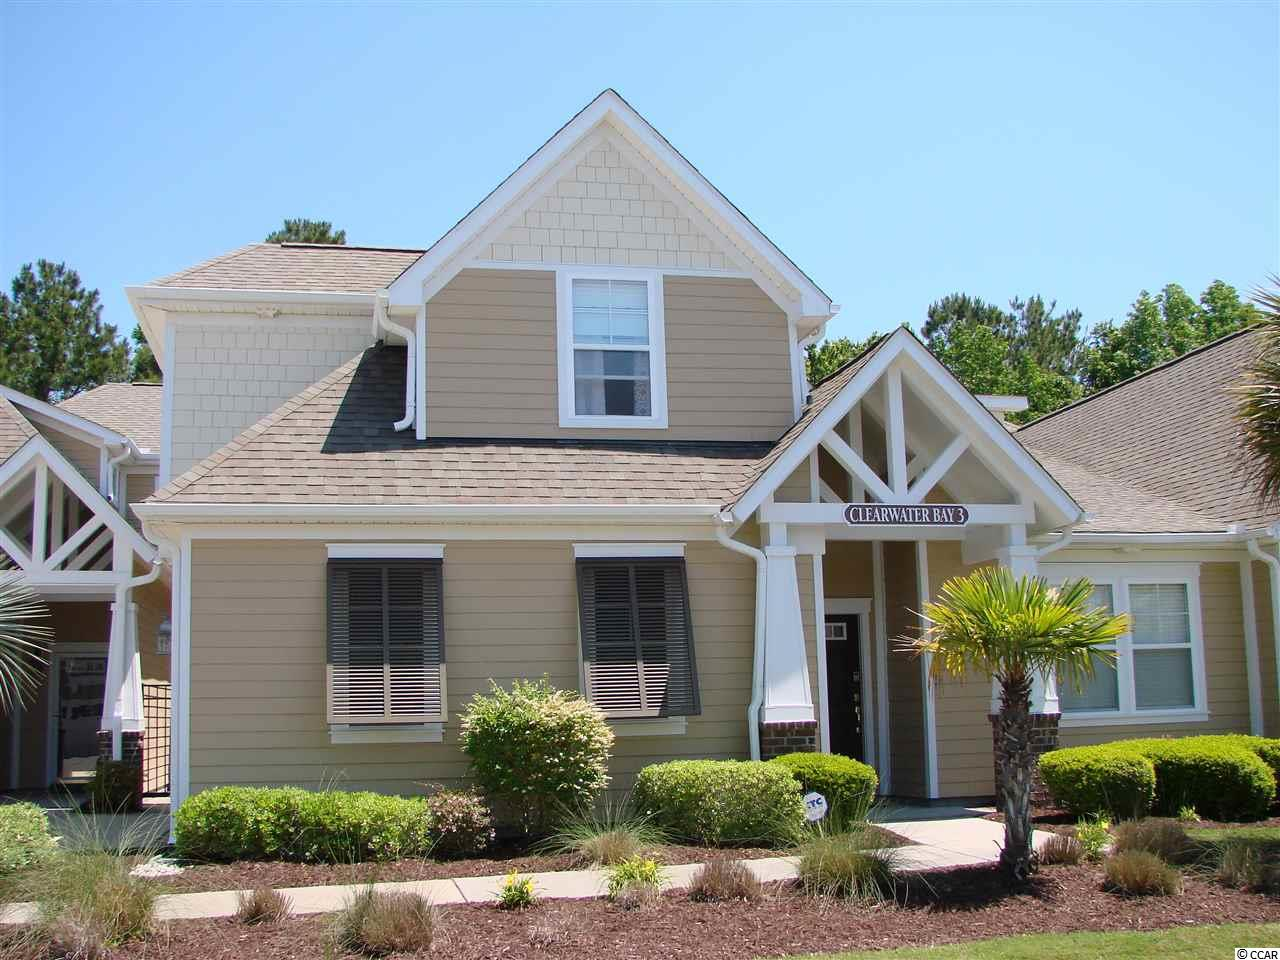 Townhouse MLS:1810318 Clearwater Bay - Barefoot Resort  6244 Catalina Dr. North Myrtle Beach SC